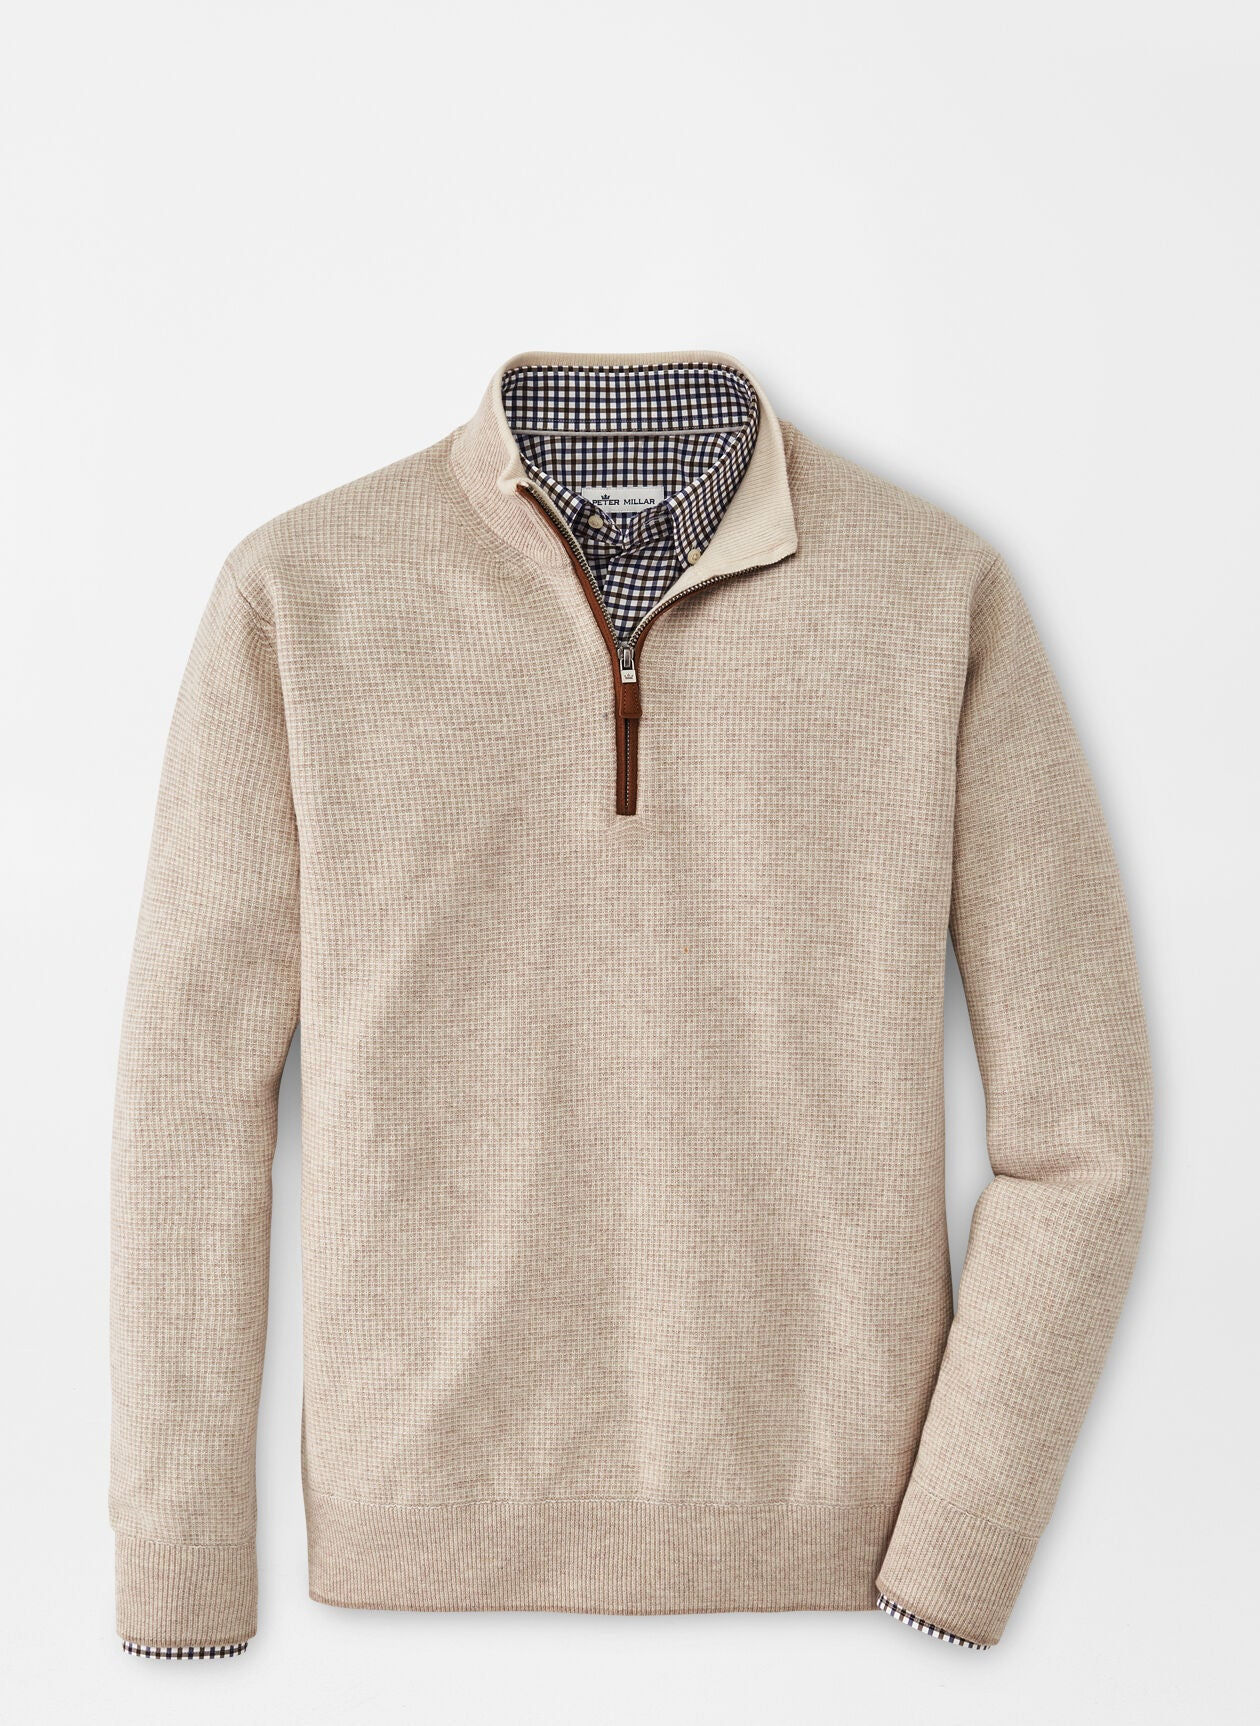 PM WOOL/CASH 1/4 ZIP